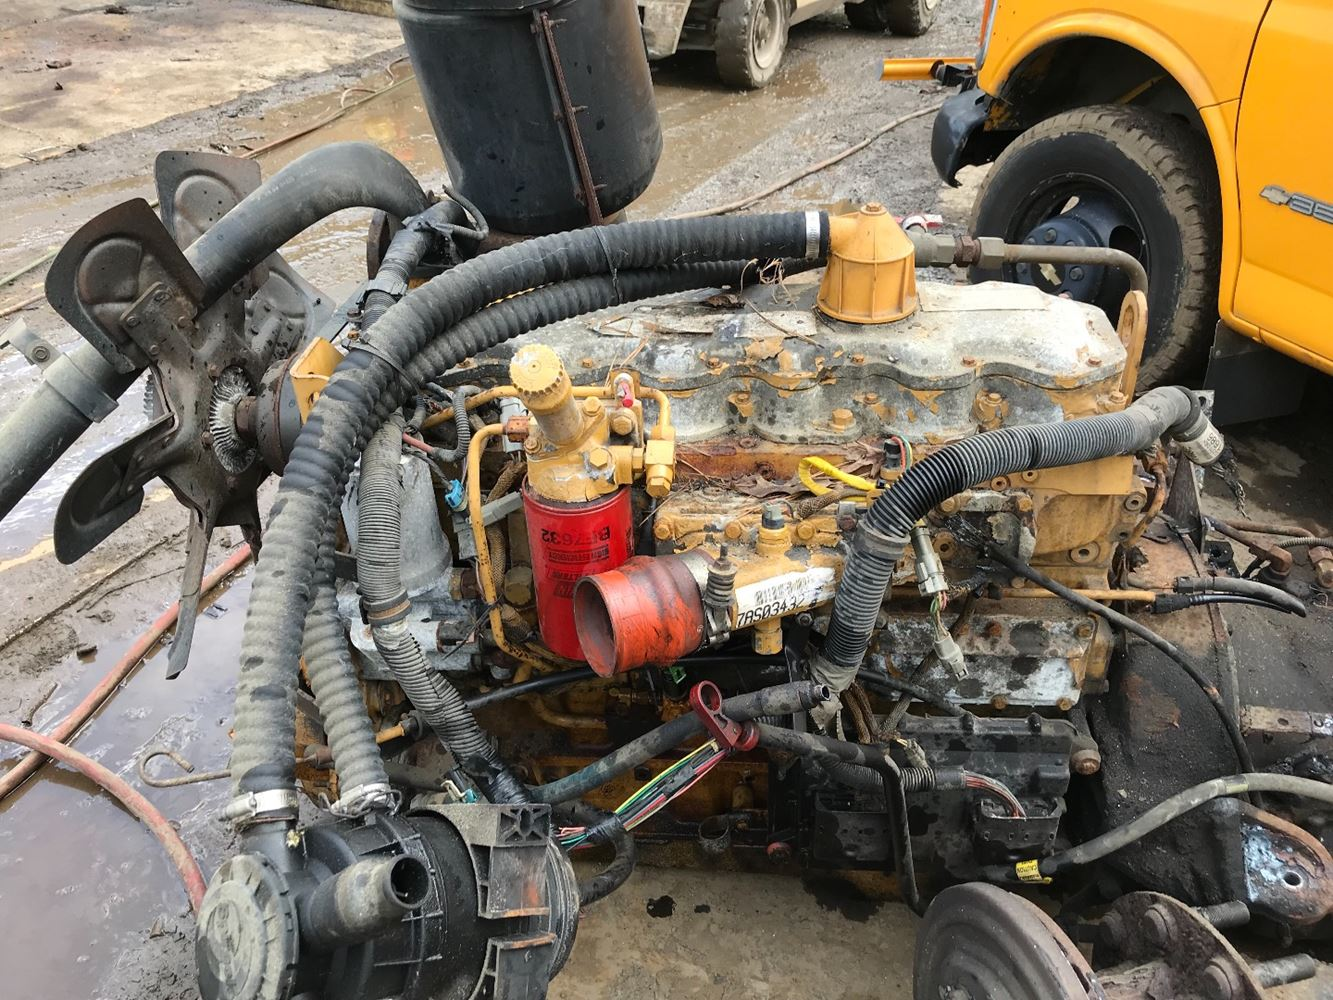 1998 Caterpillar 3126 Stock T Salvage 1673 Cat 2970 Tpi Fuel Filter Truck 14 August 2018 Image Subject To Change